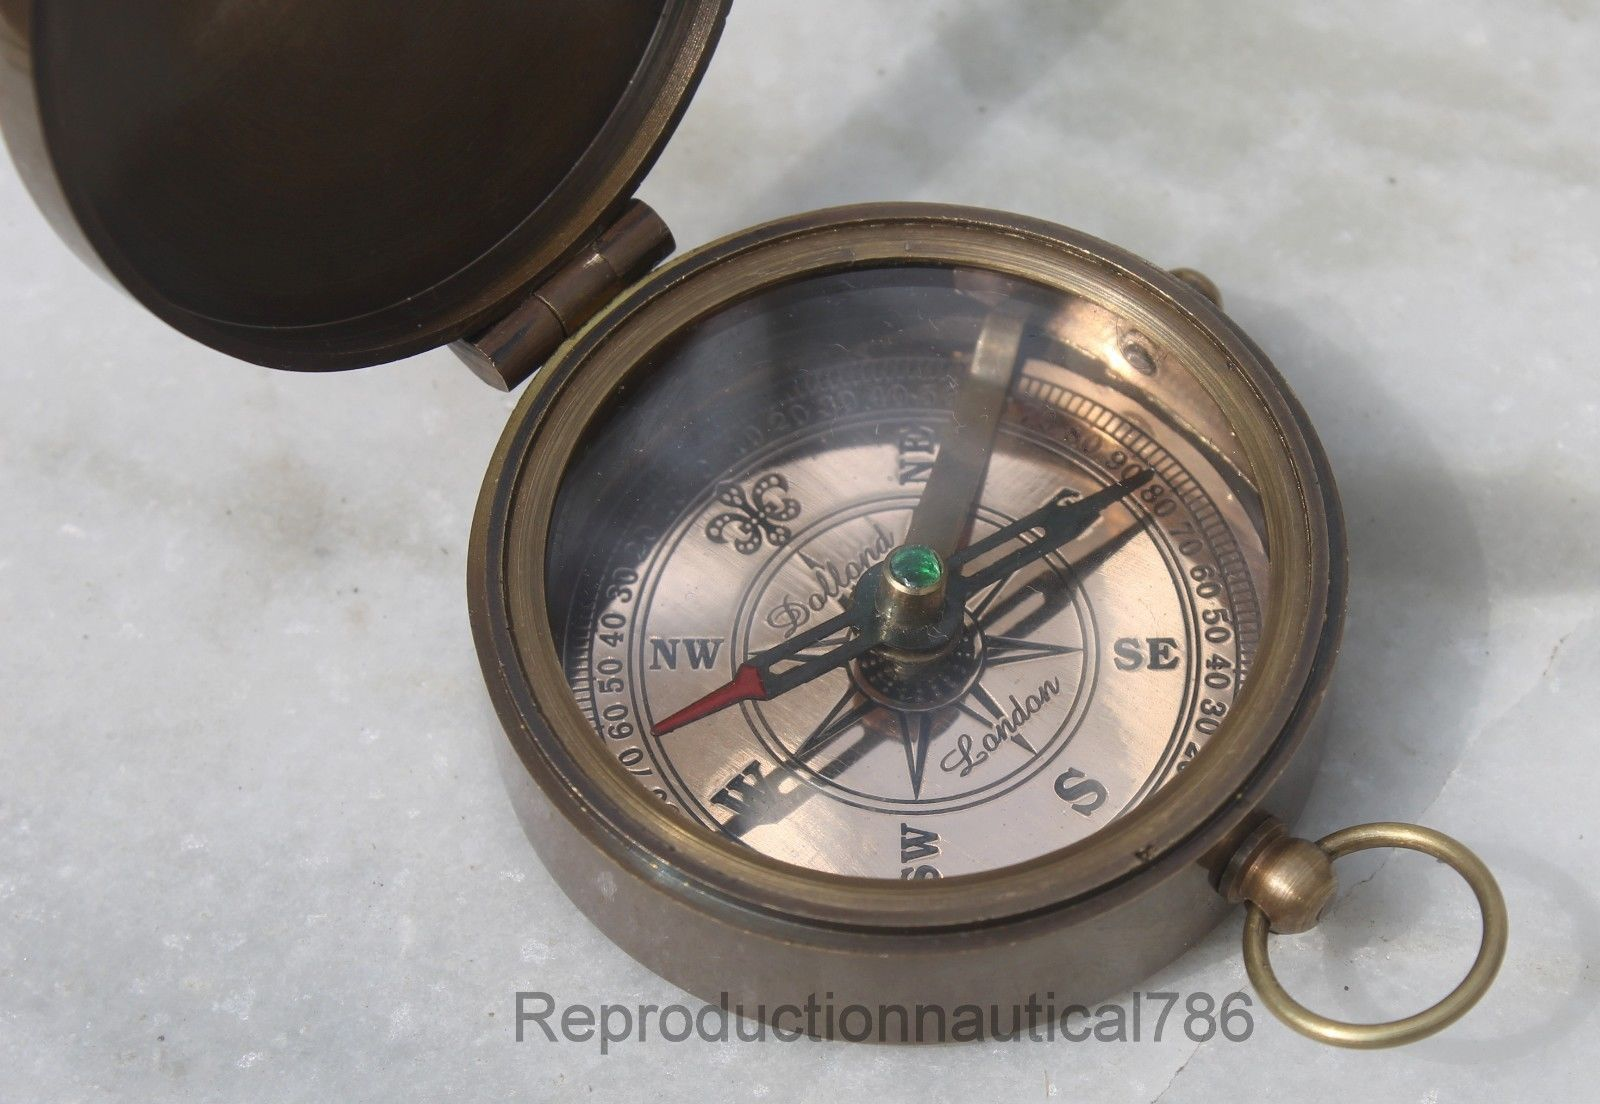 Maritime Dollond London Compass Brass Antique w Leather Case Item For Gifted